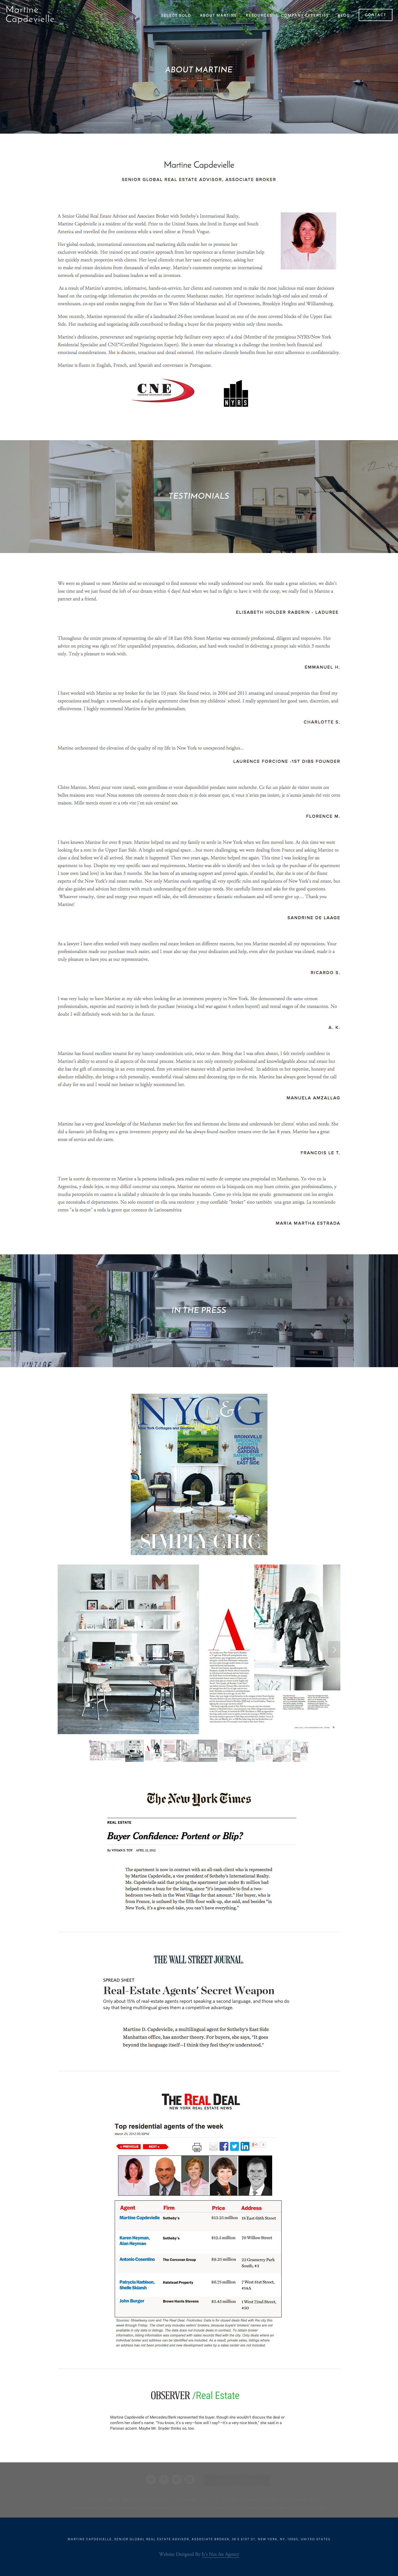 Real Estate Website_Martine Capdevielle2.png